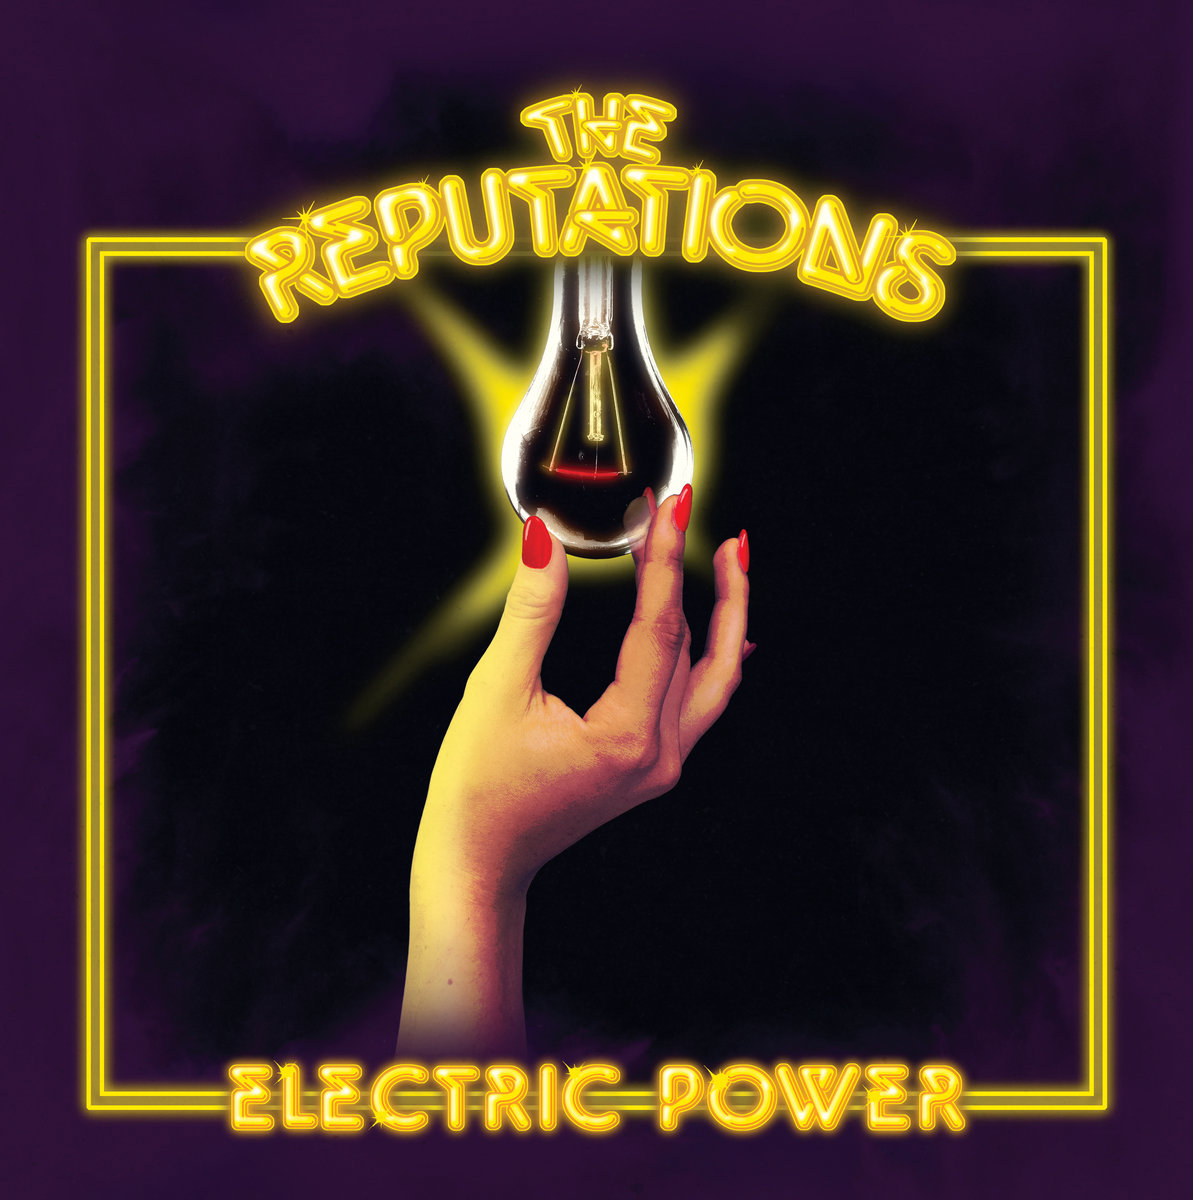 A female hand holds up a lightbulb, as if screwing it into the words The Reputations lined at the top. The words Electric Power line the bottom and both words are stylized as a neon sign in bright yellow in front of a black background and yellow trim.